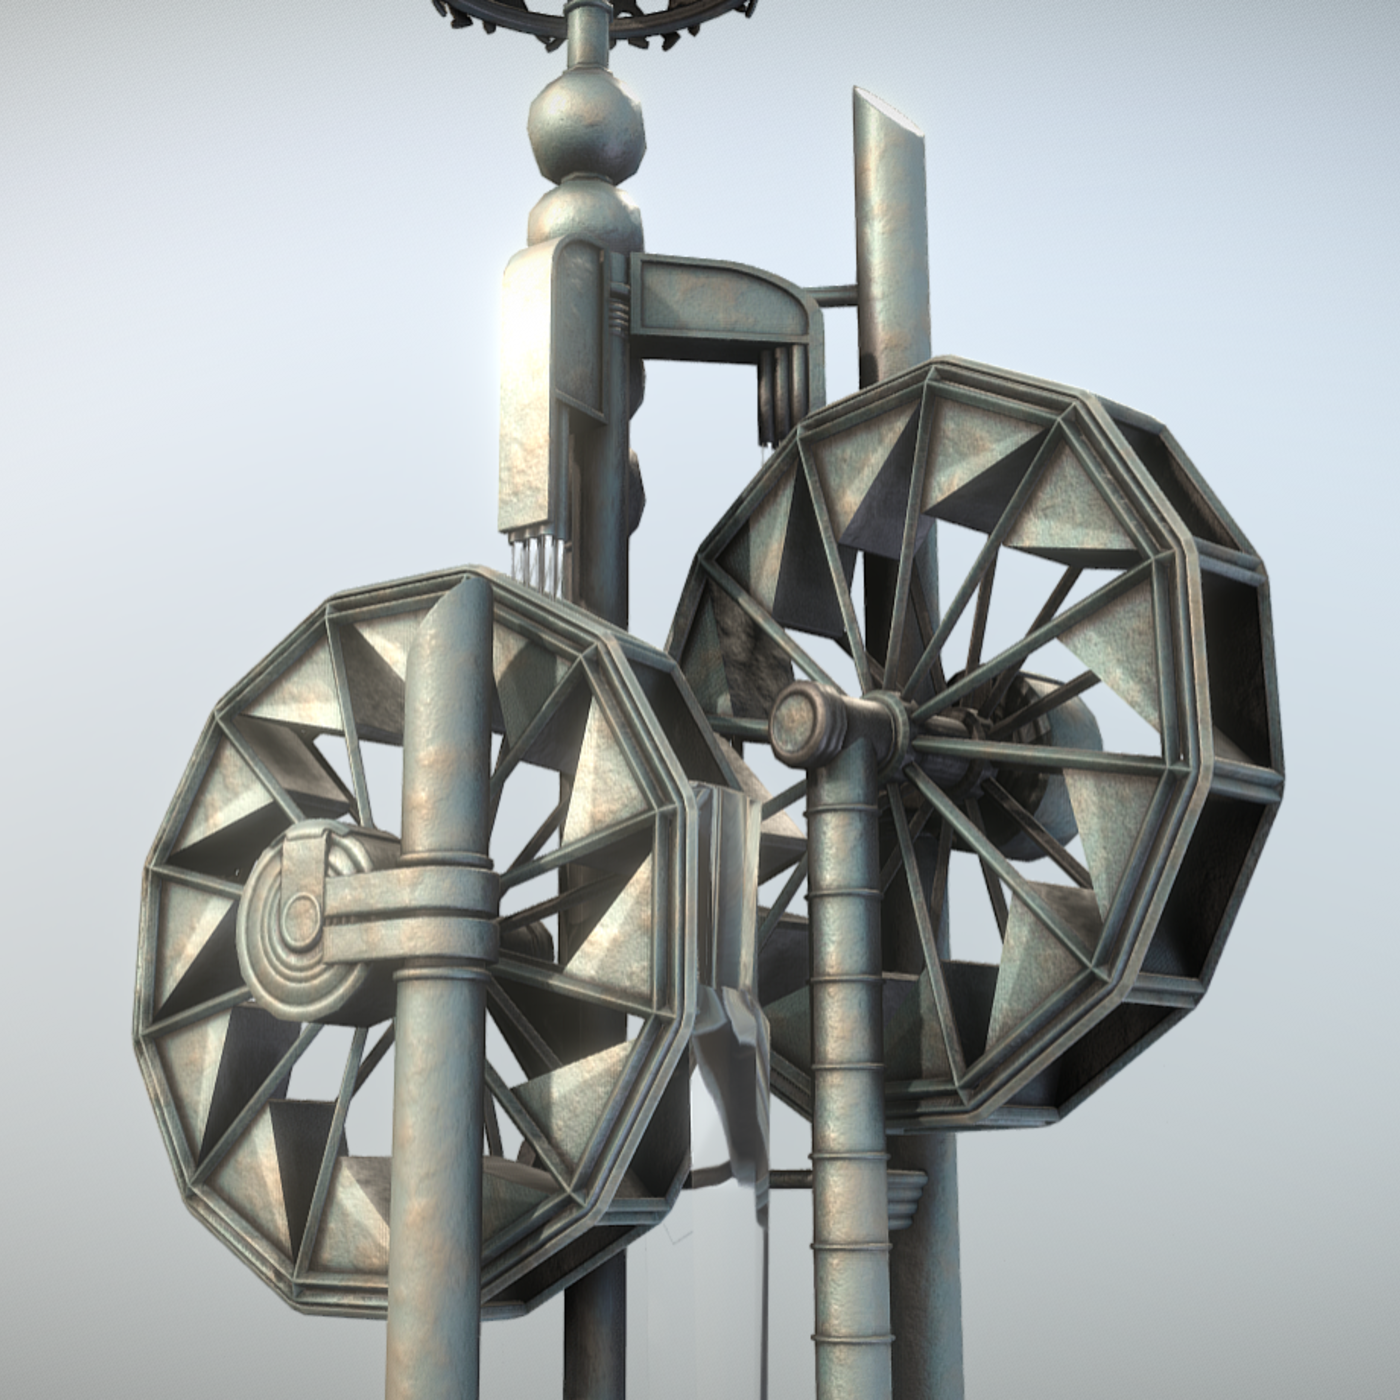 Water Wheels Fountain (Low-Poly Version)